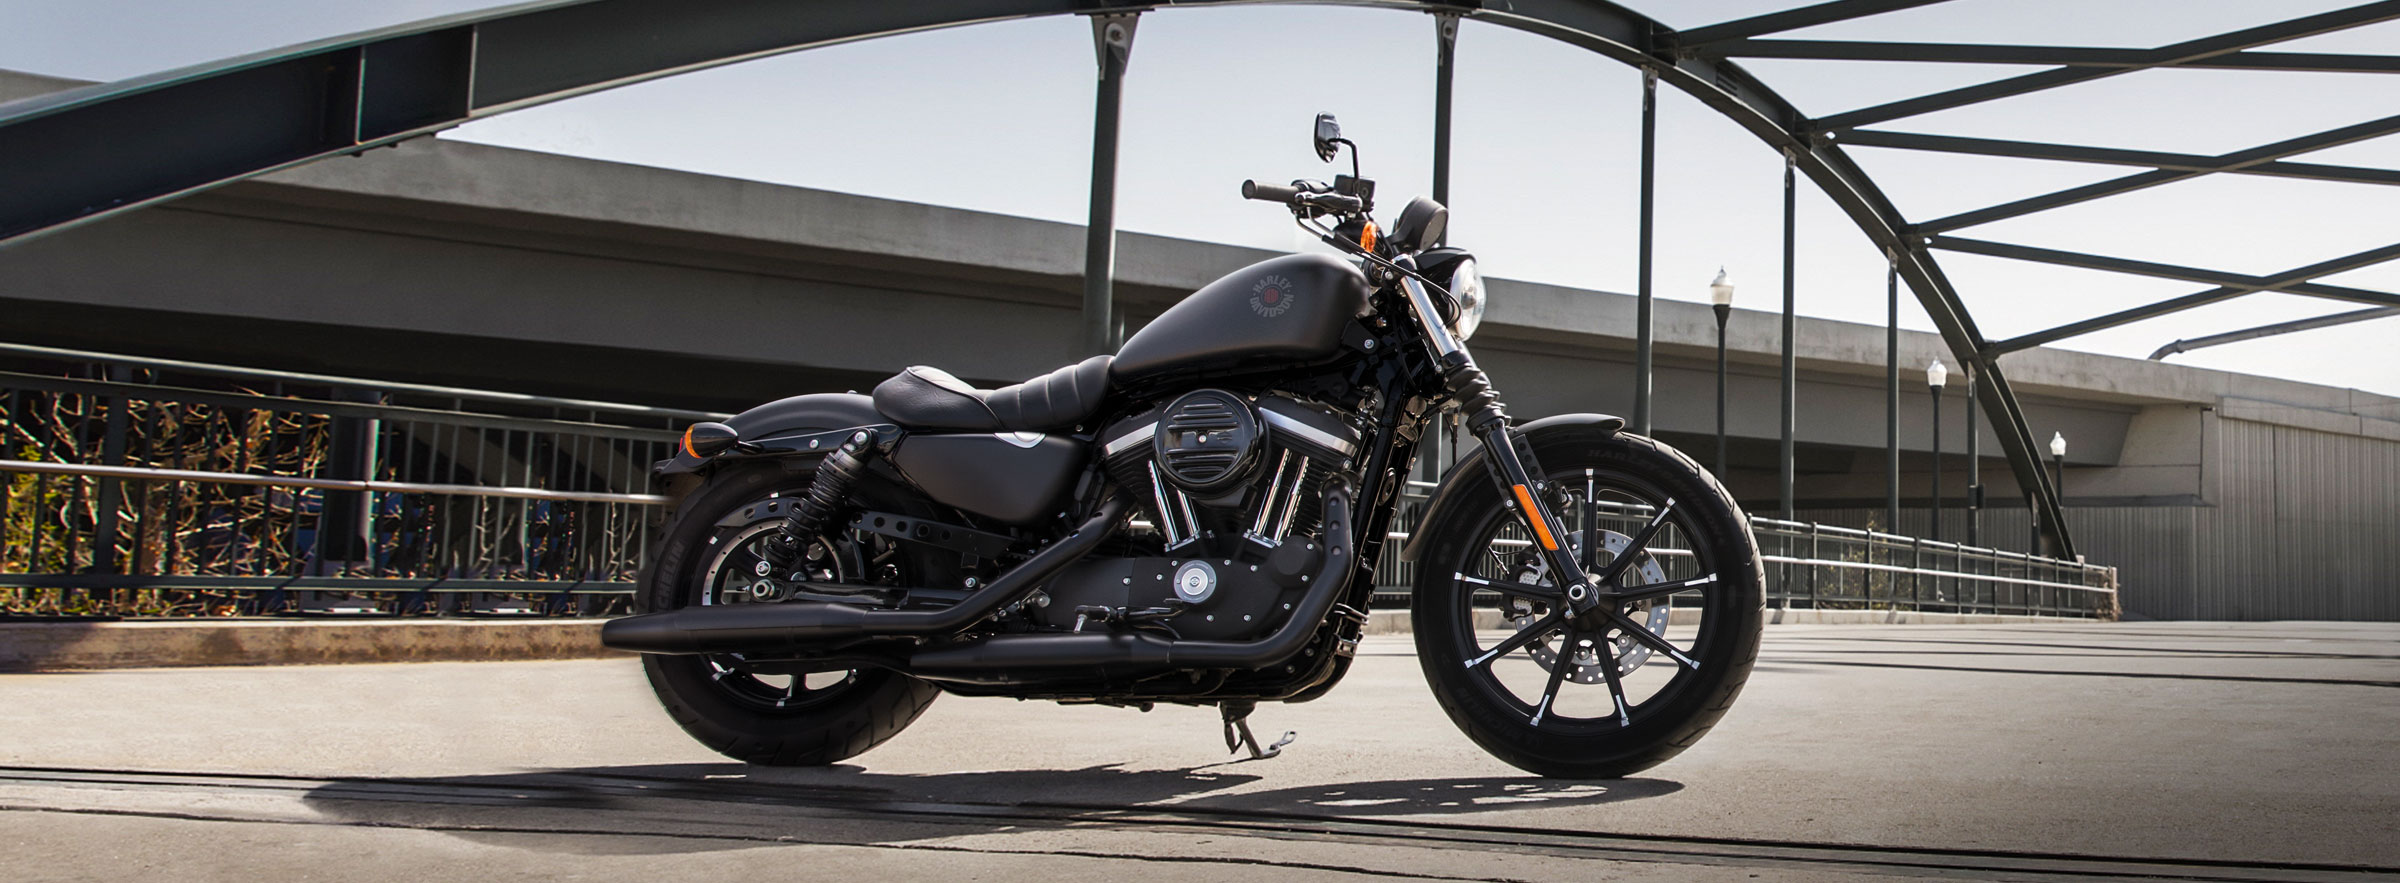 home › 2019 motorcycles › sportster › iron 883™